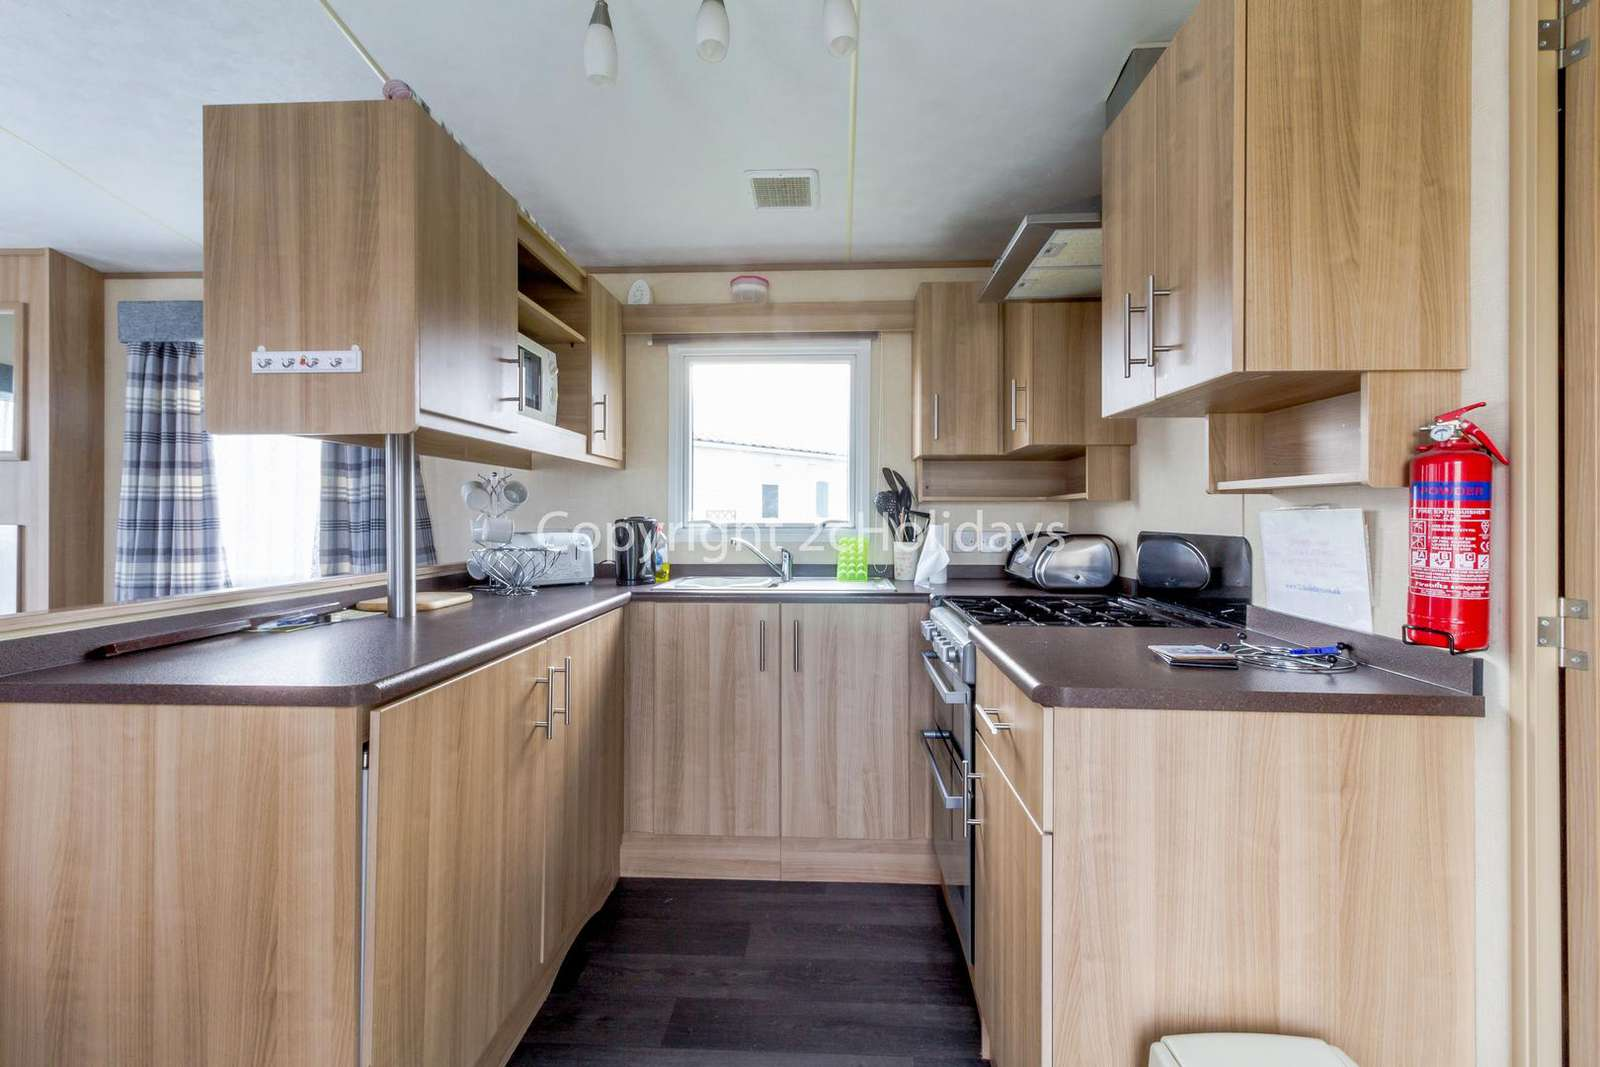 Fully equipped kitchen, perfect for self catering holidays!